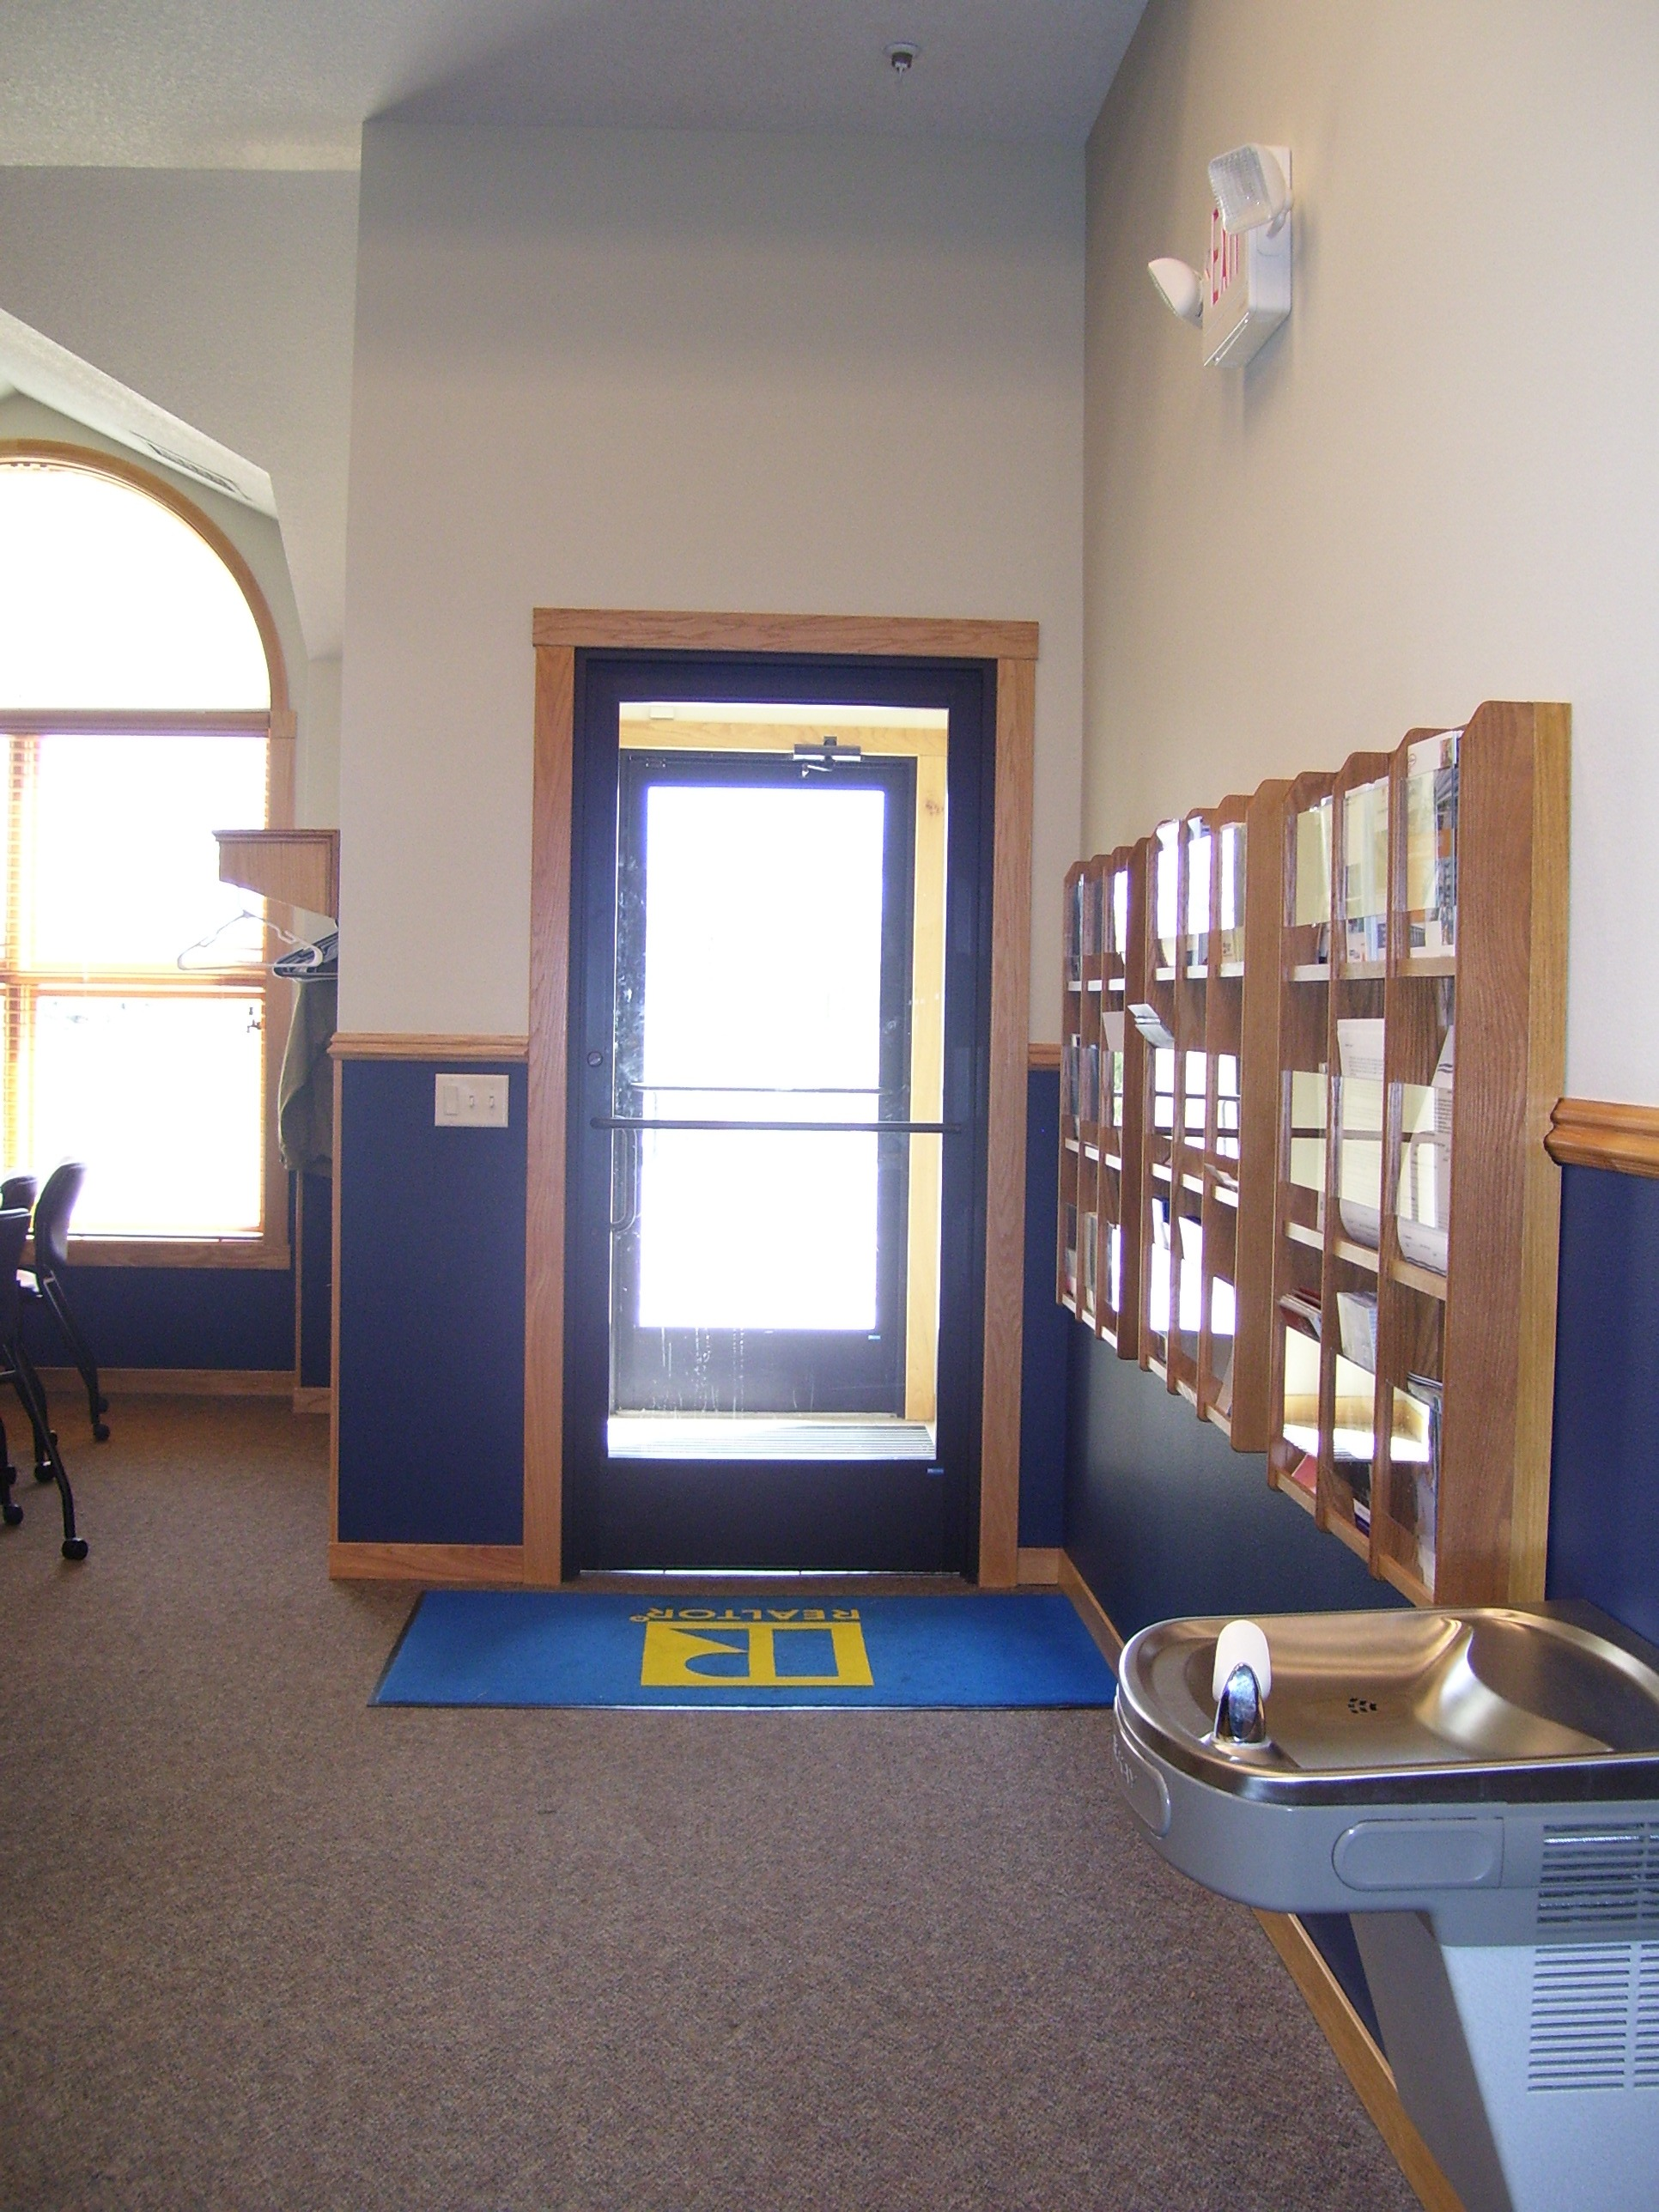 Private entry to conference room